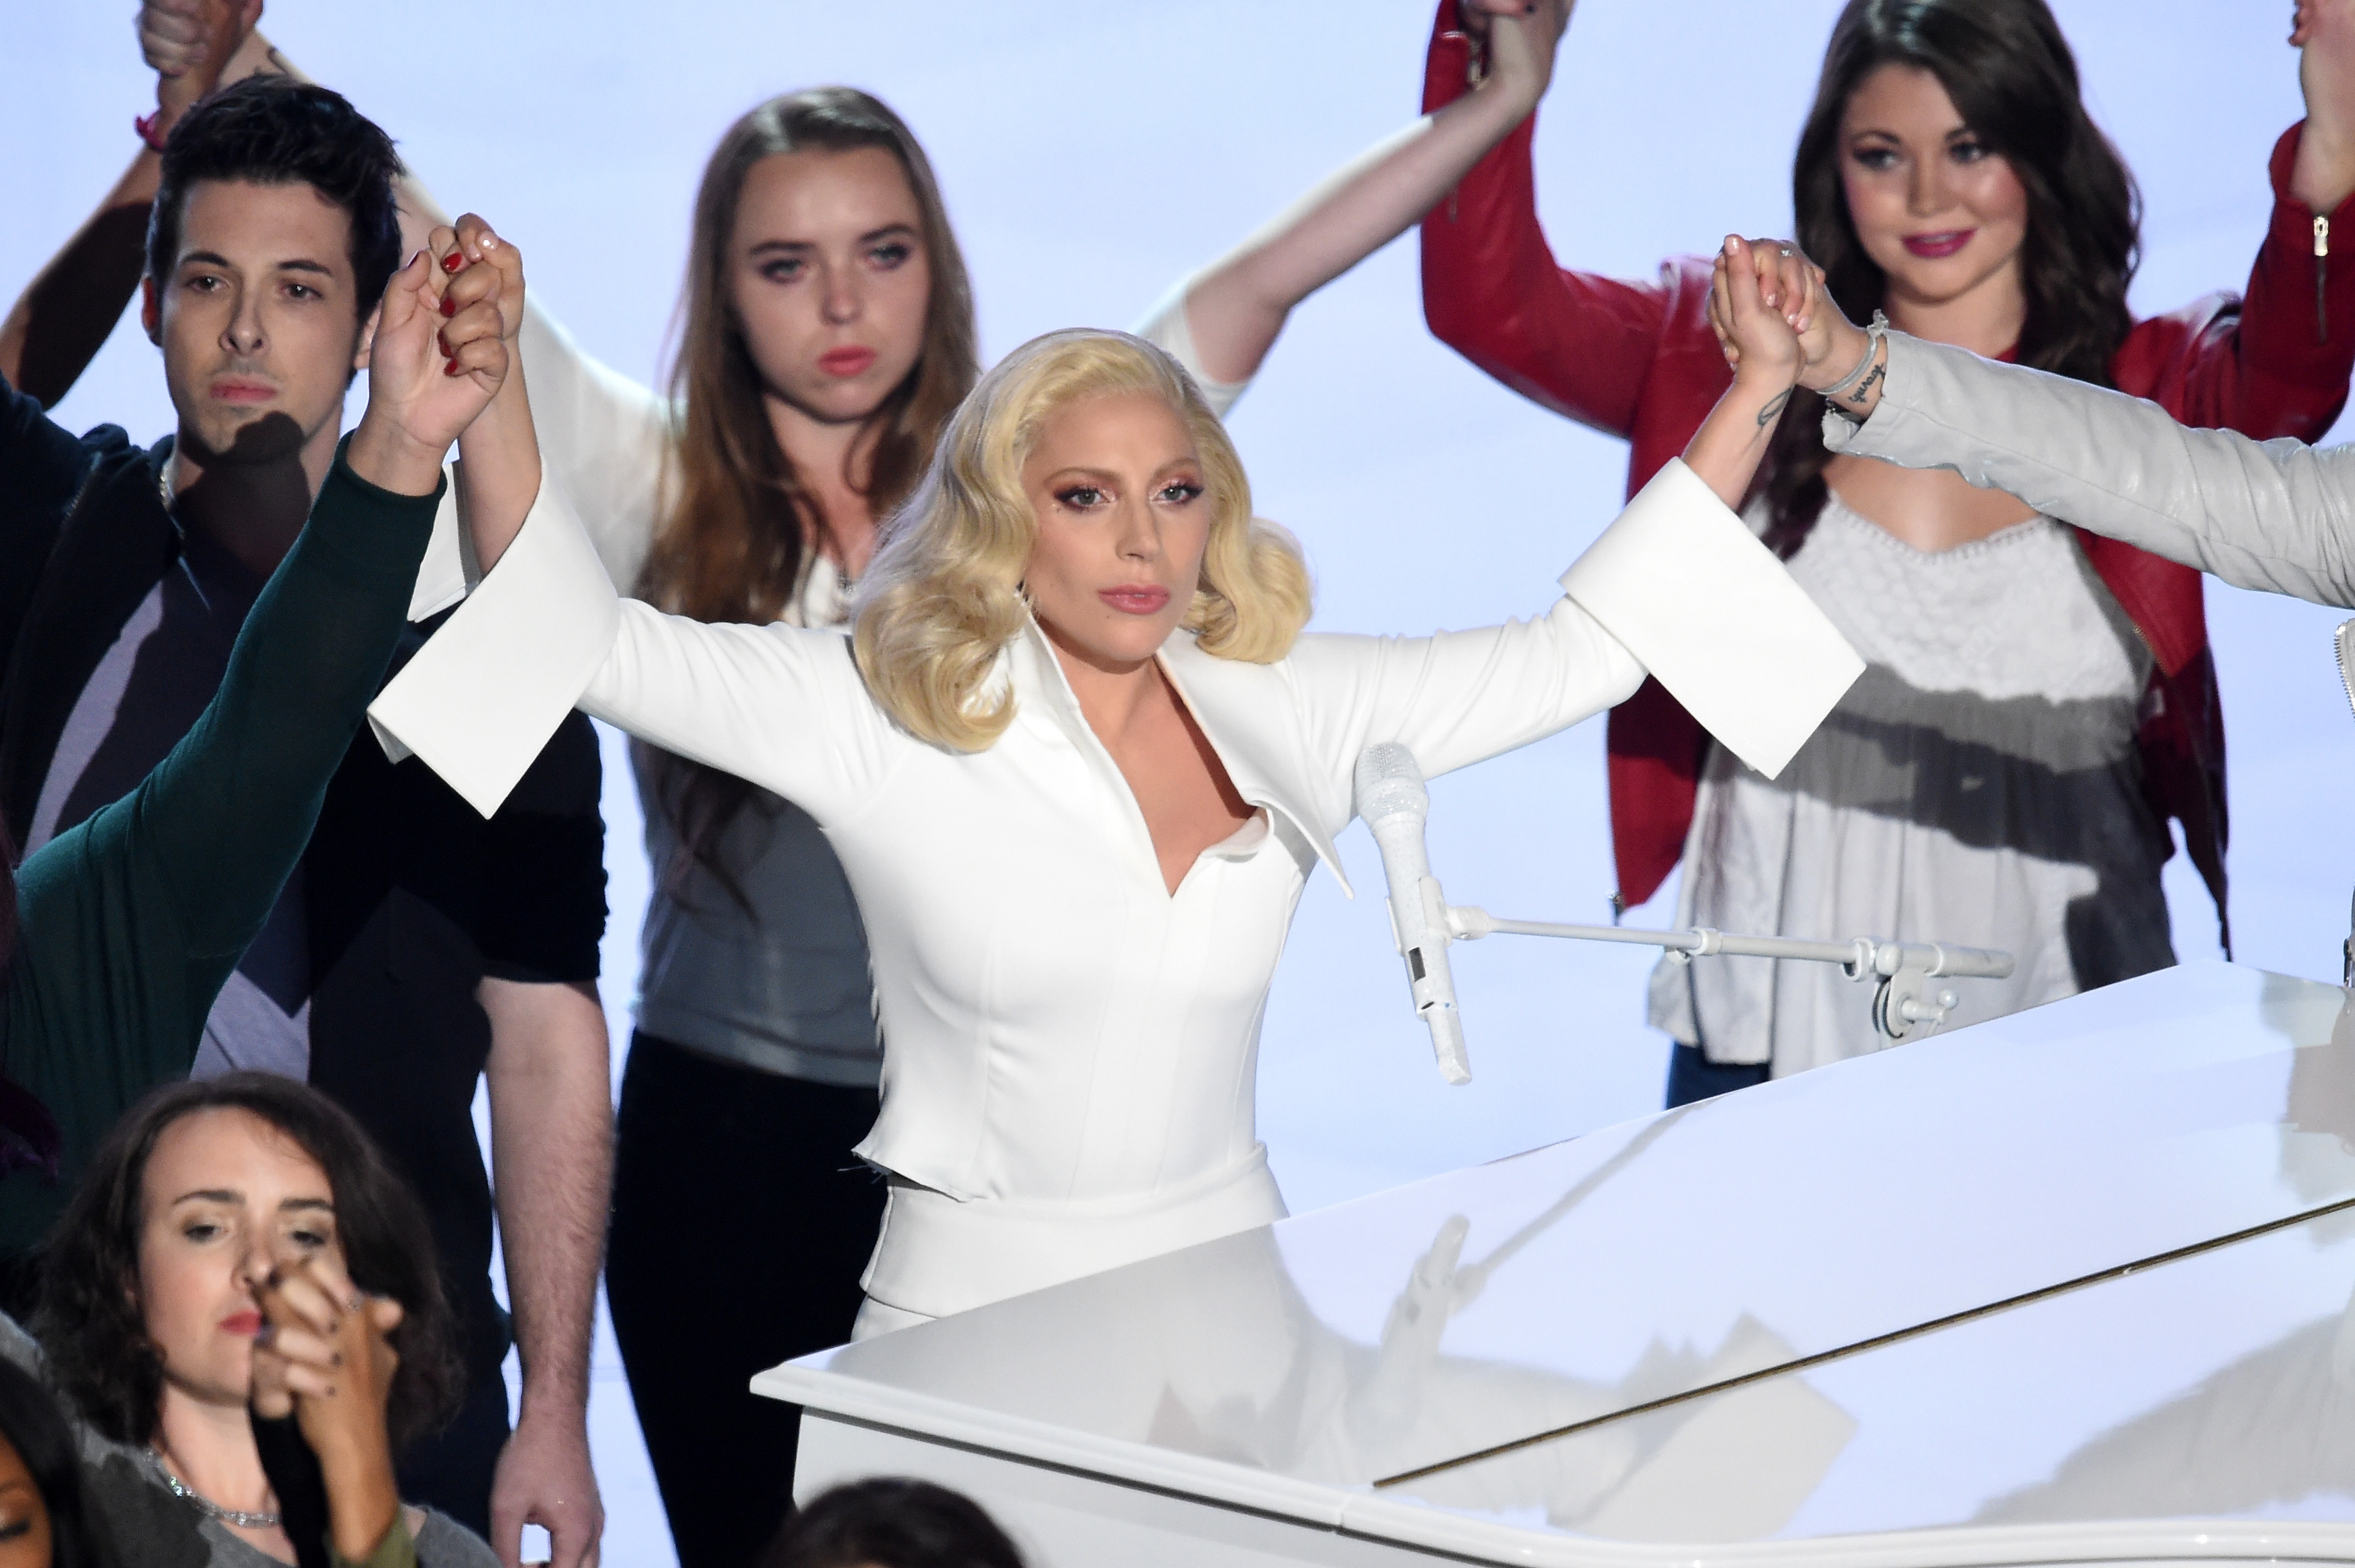 Singer-songwriter Lady Gaga performs onstage during the 88th Annual Academy Awards at the Dolby Theatre on February 28, 2016 in Hollywood, California.